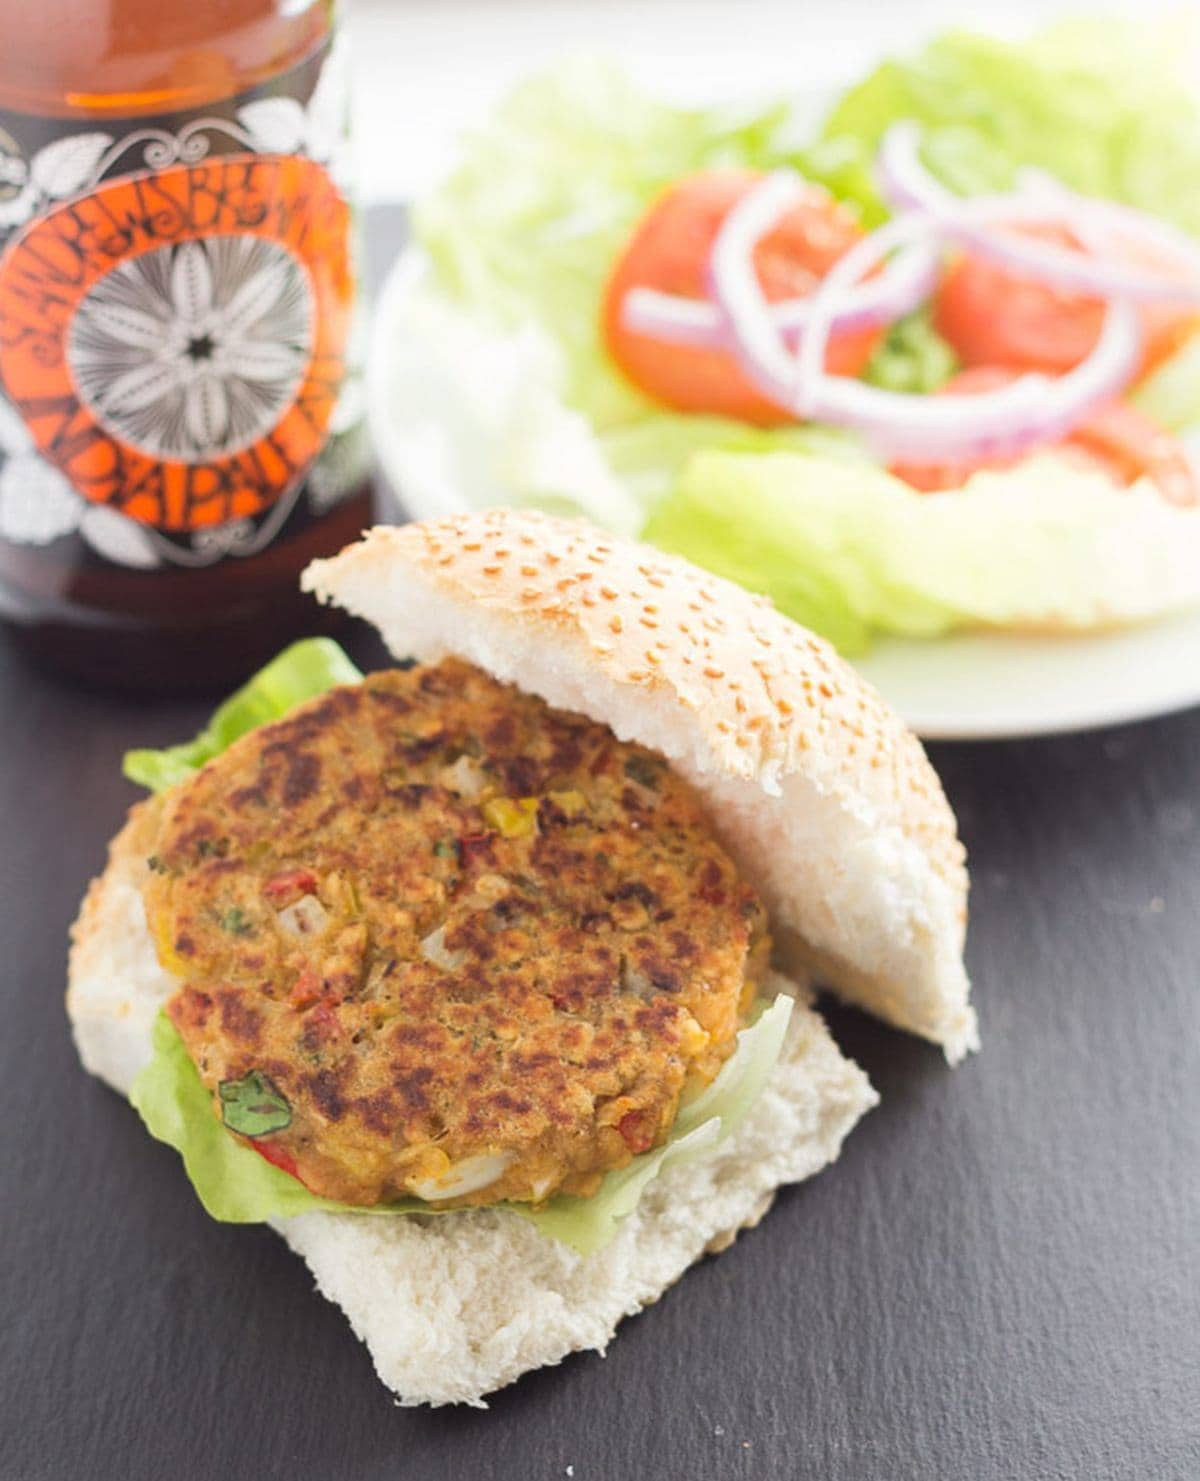 A spicy lentil burger on a burger bun. Plate of toppings and a bottle of beer in the background.